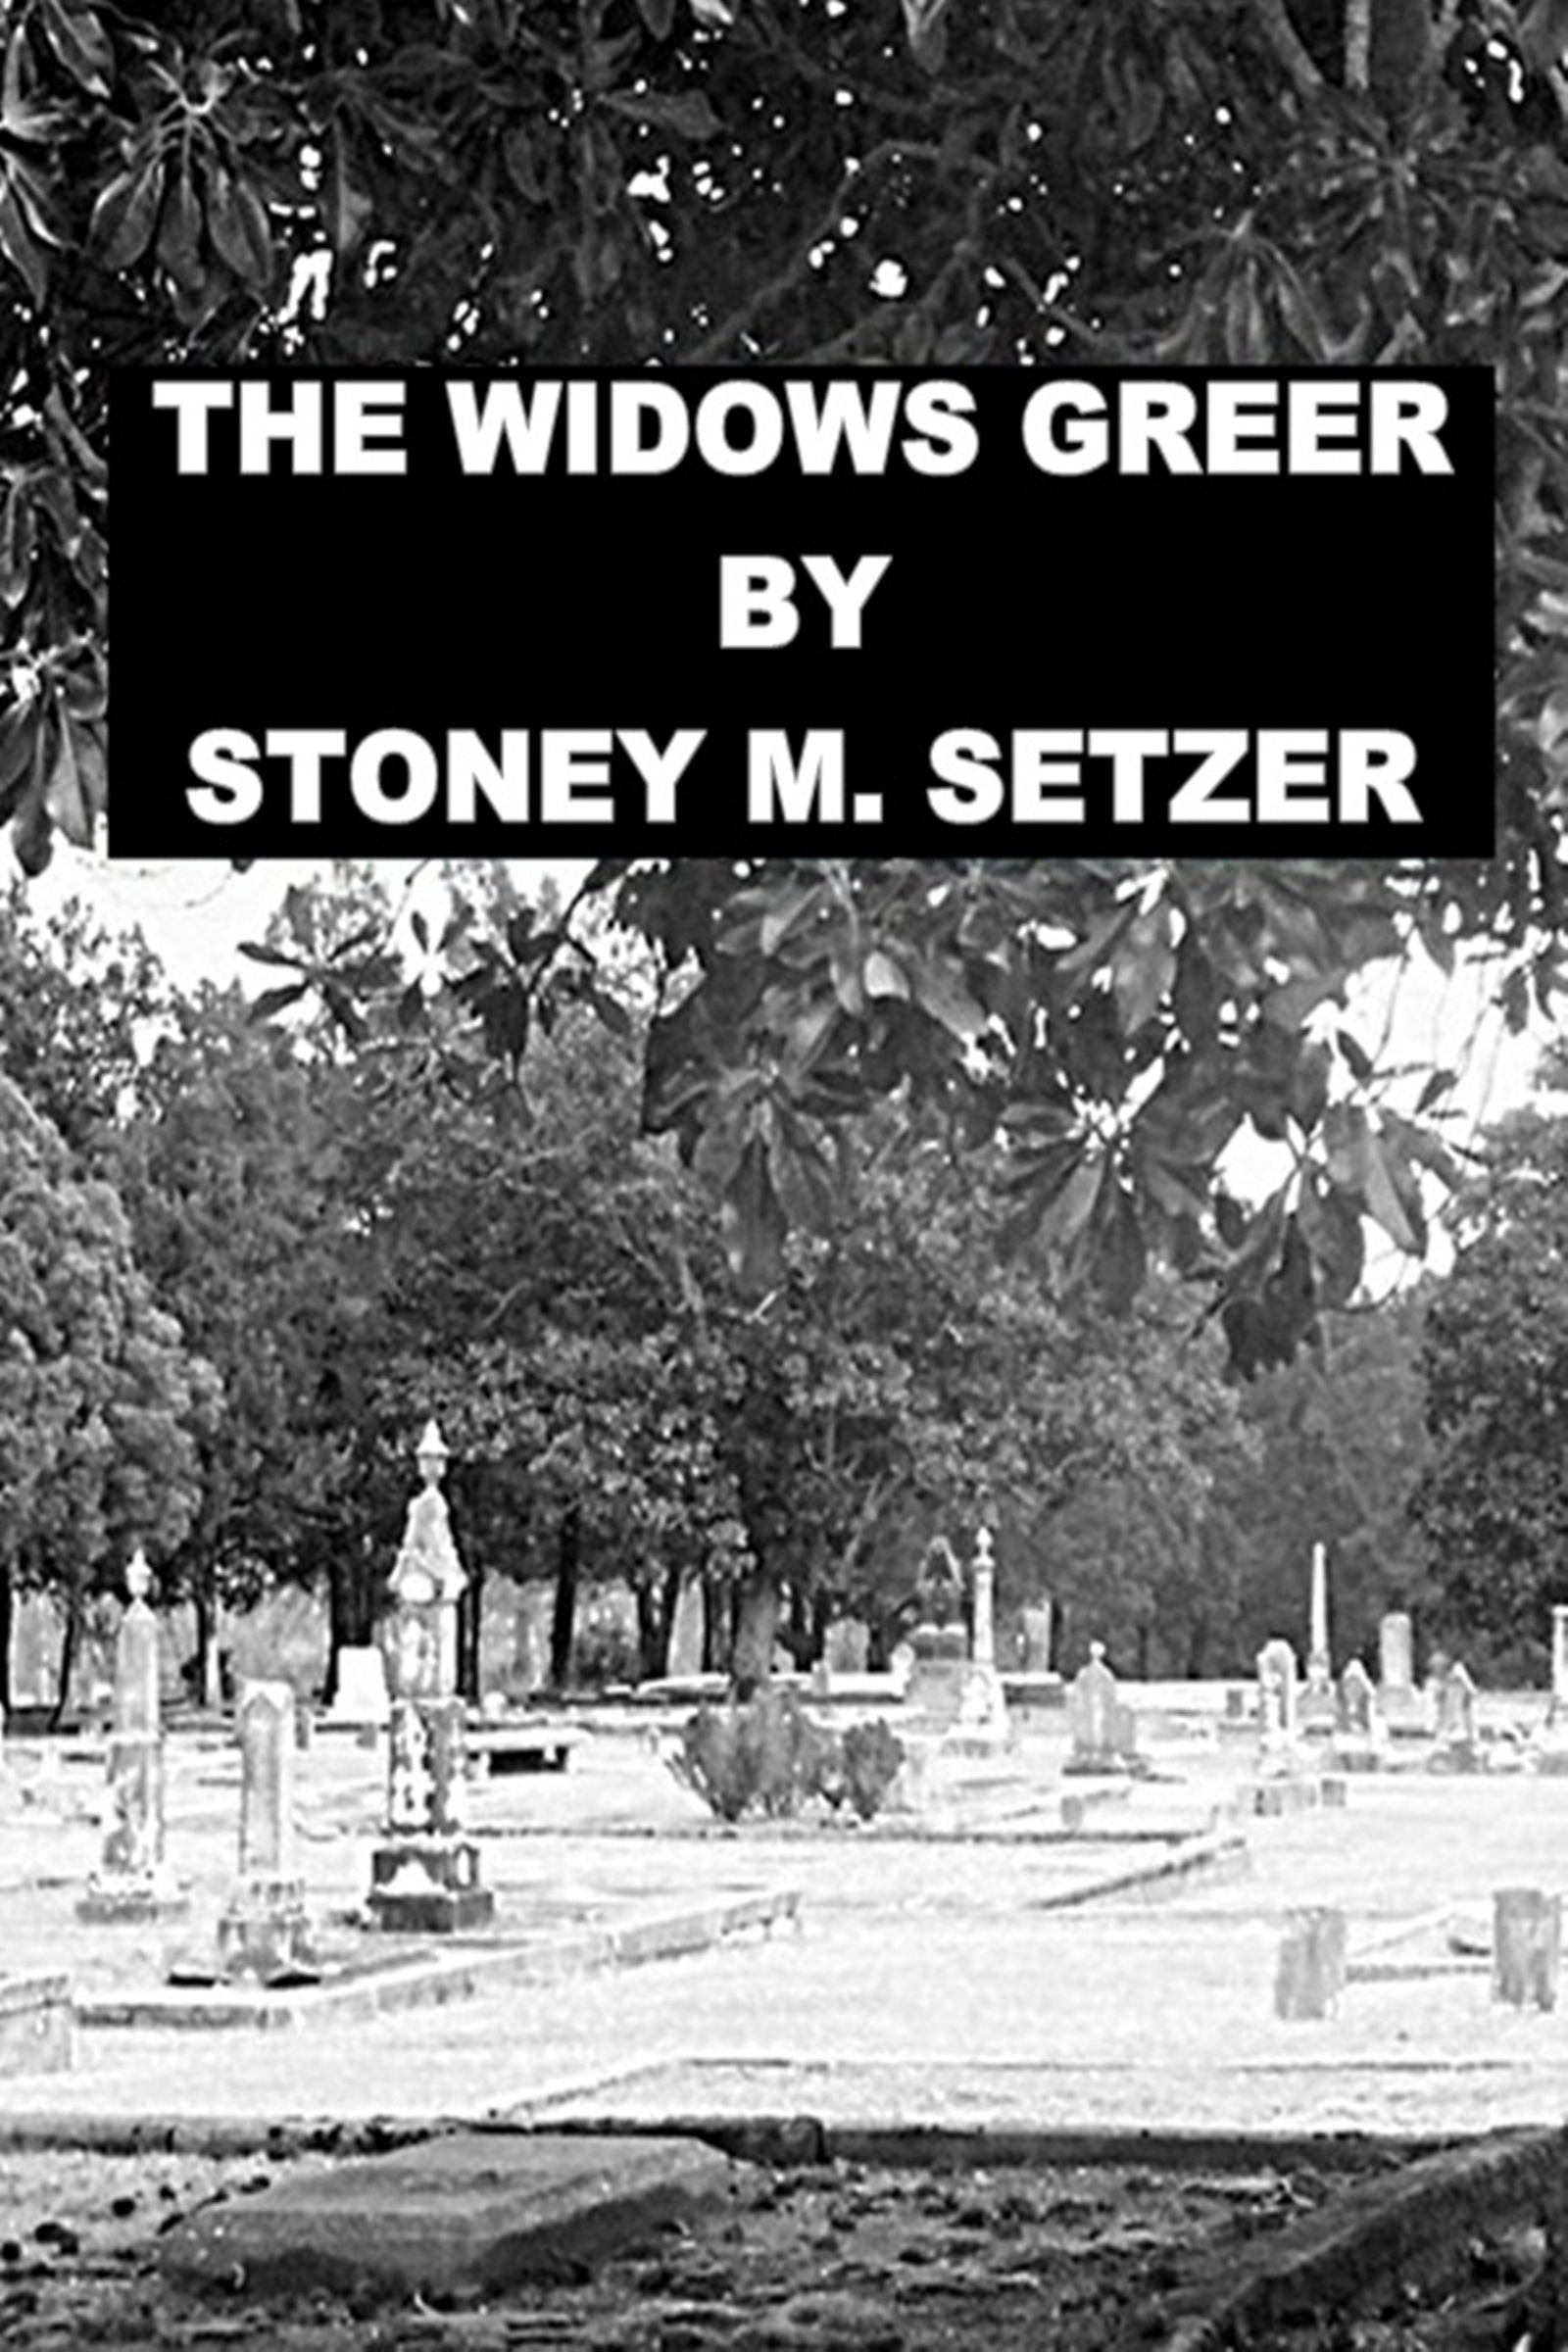 The Widows Greer By: Stoney M. Setzer